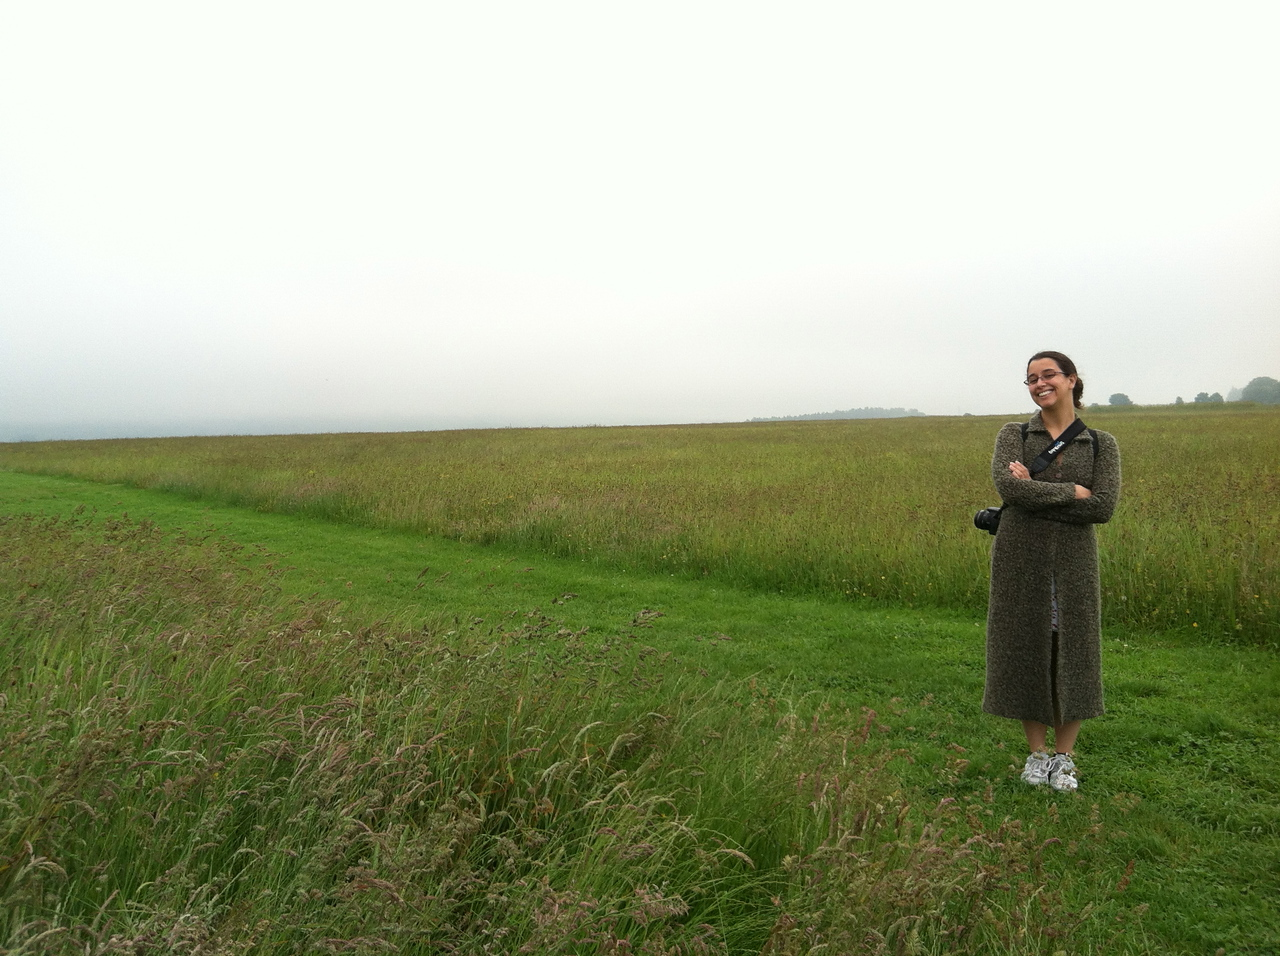 6 July 2012: Here we are at the battlefield.